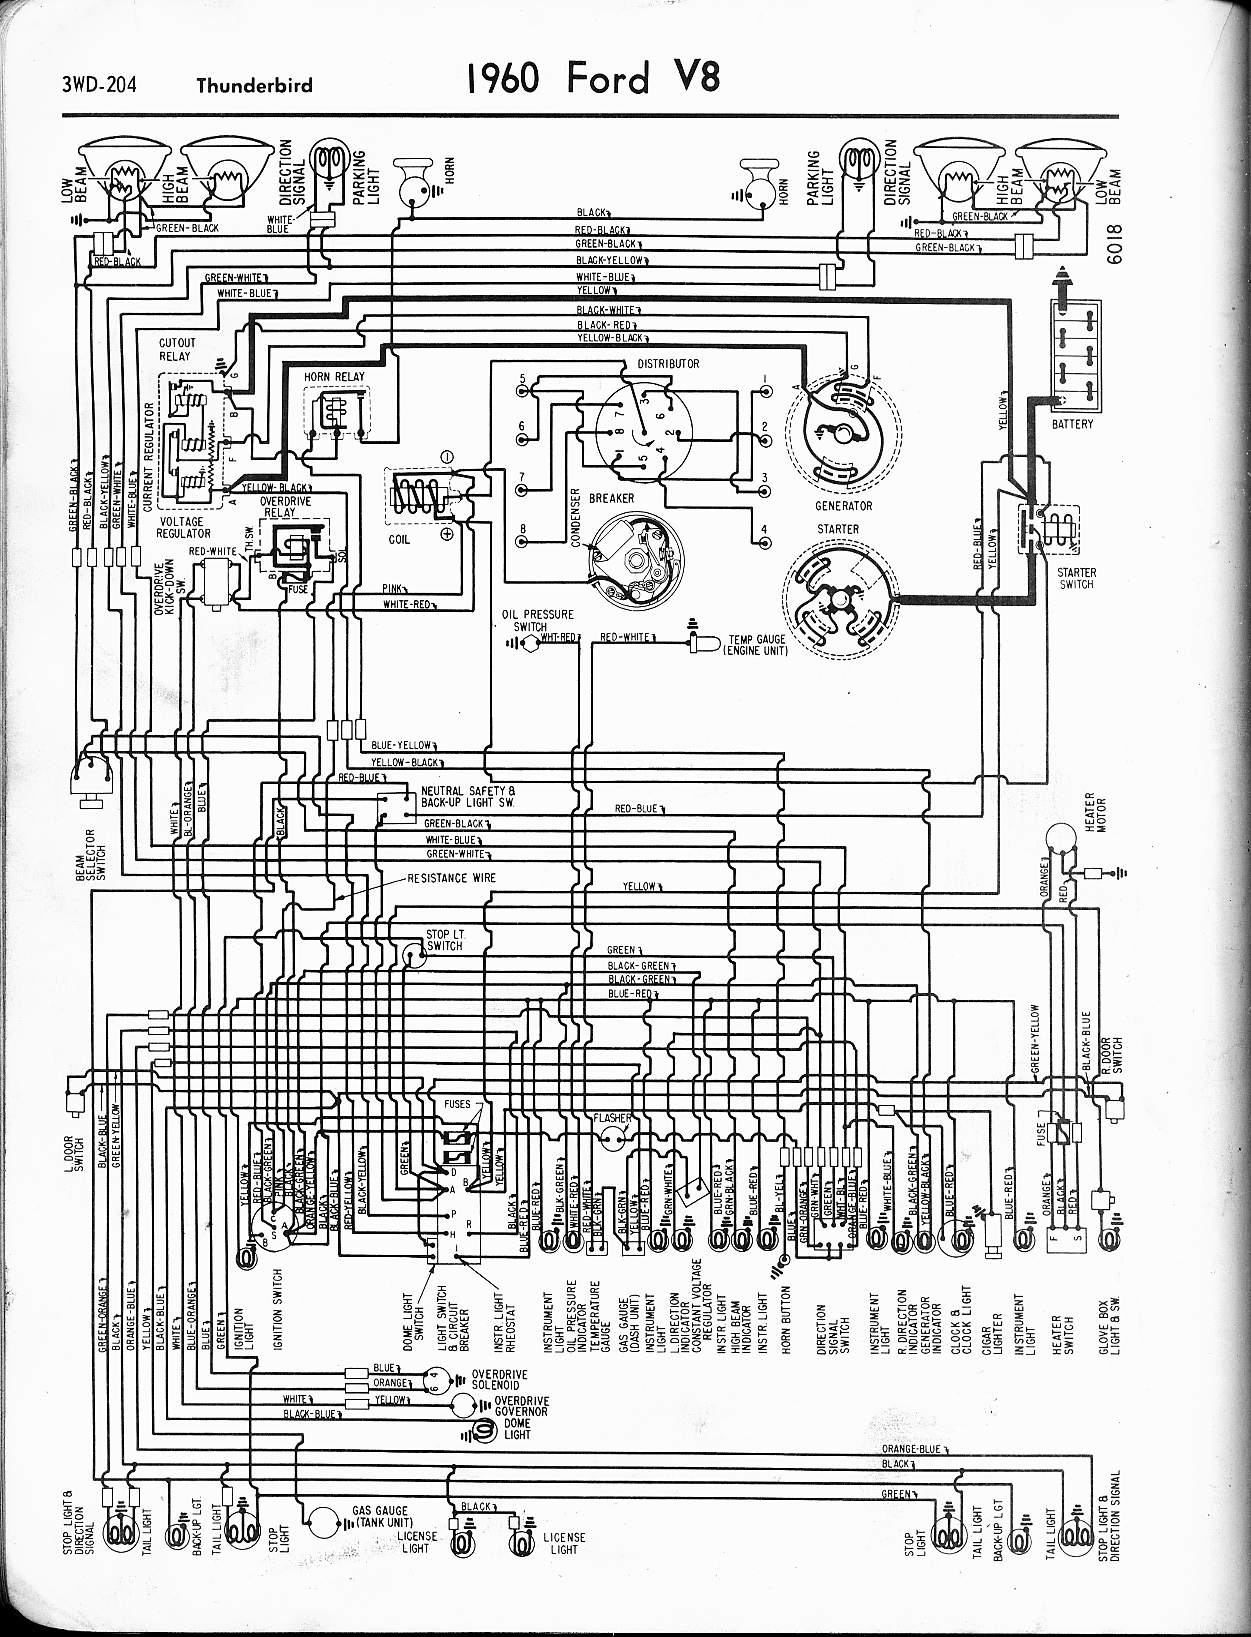 91 Ford Thunderbird Wiring Diagram - Wiring Diagrams Bloglecoccinellegrignasco.it